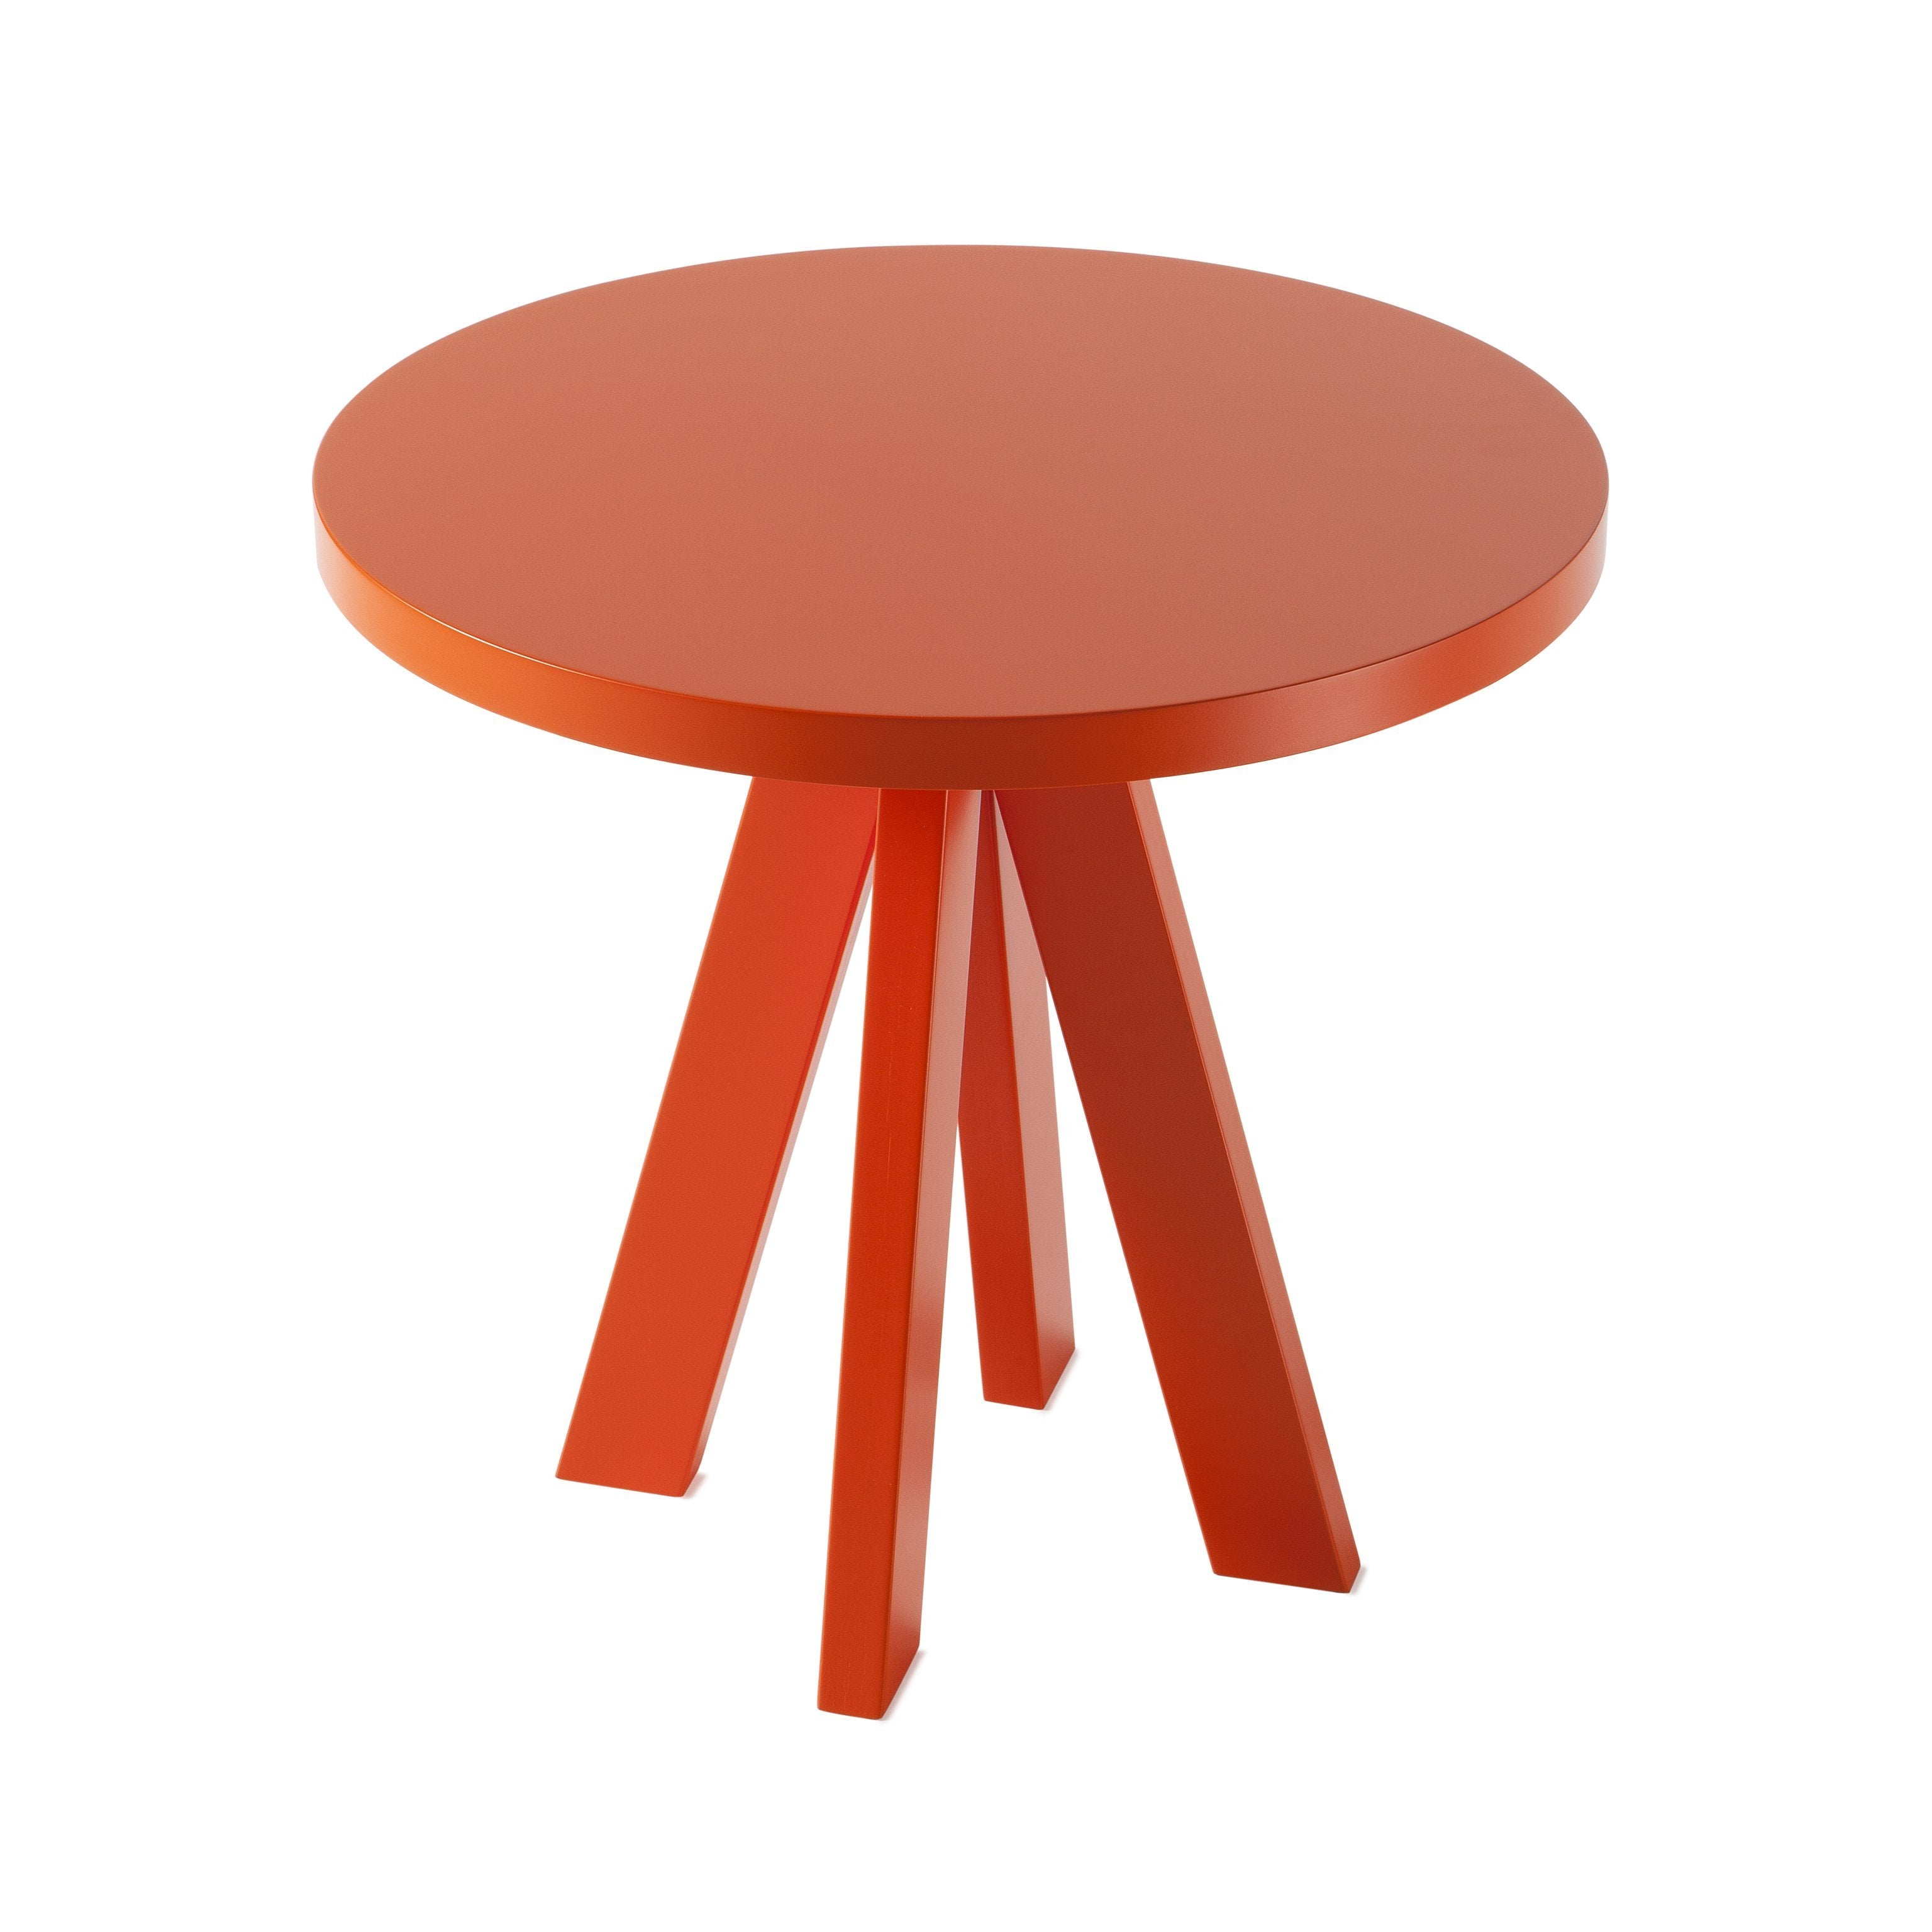 A.ngelo Coffee Table: Traffic Orange